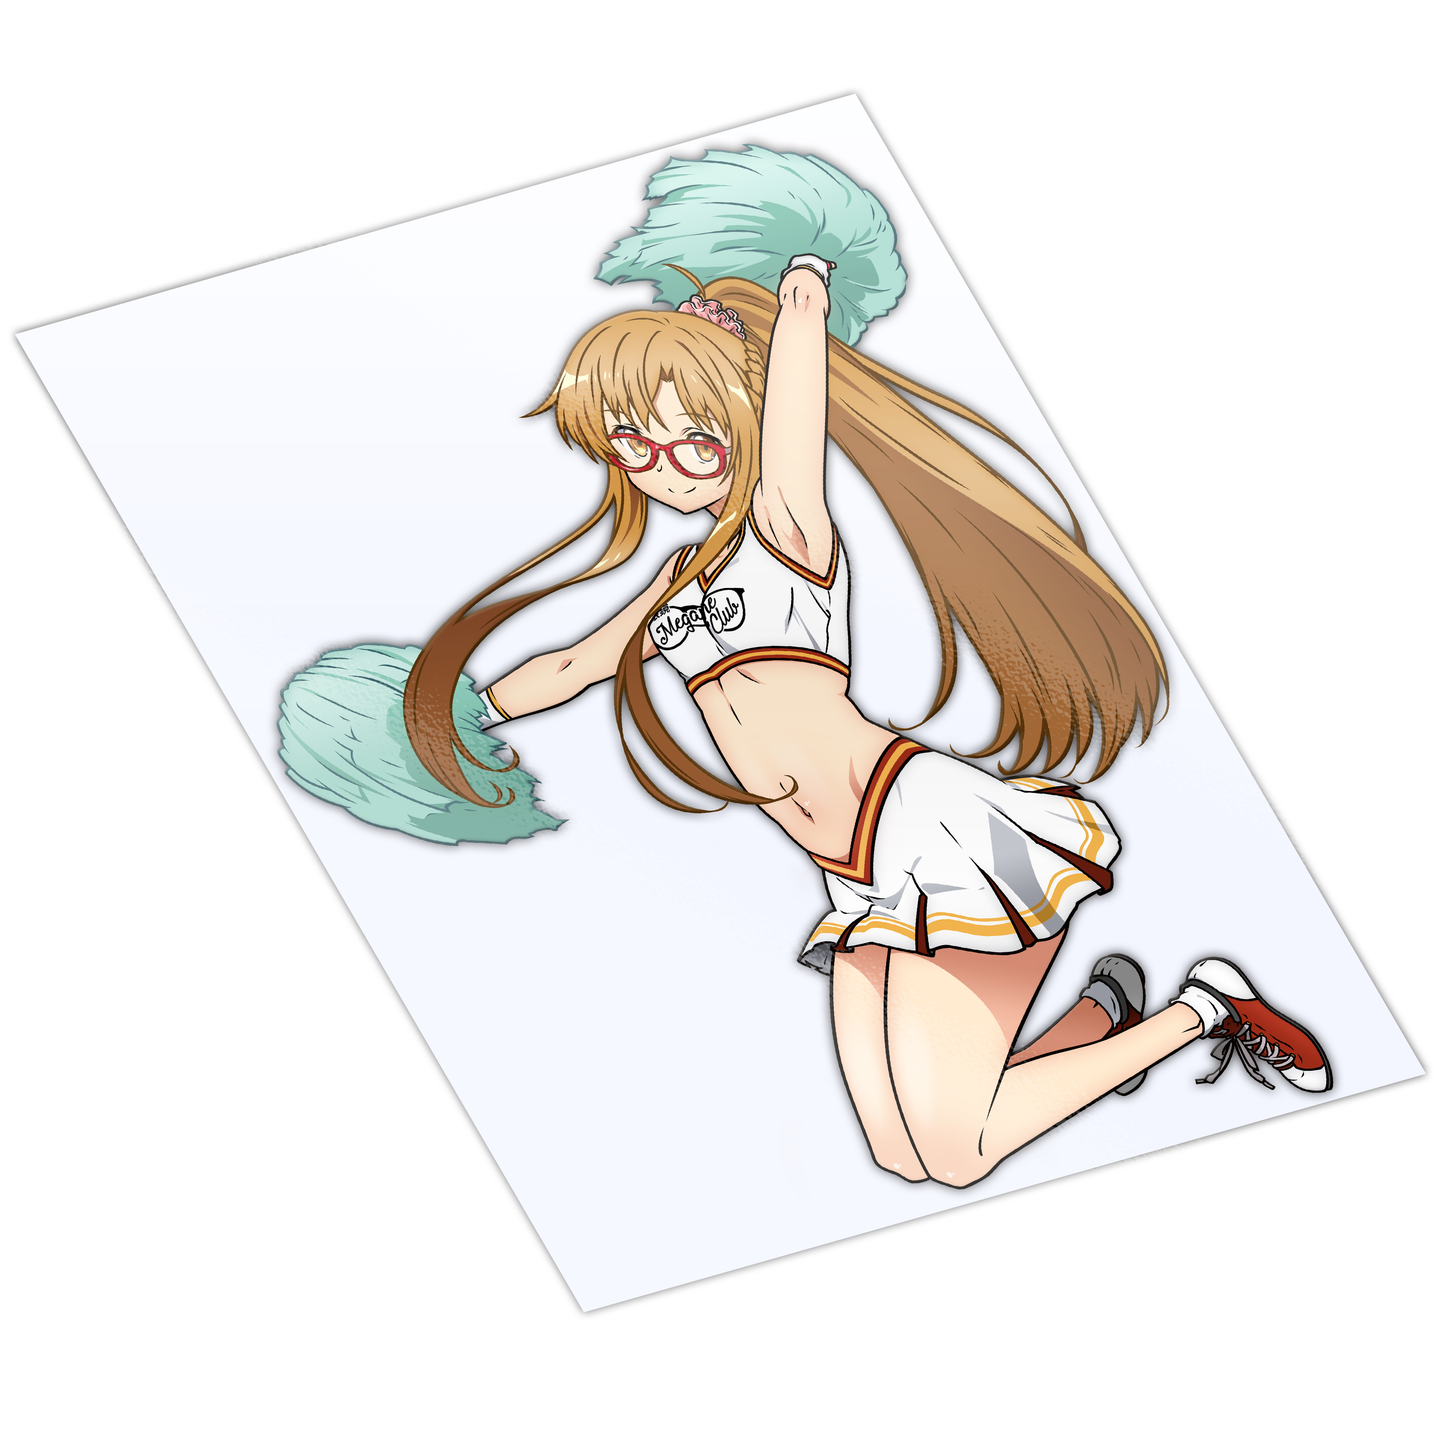 Asuna Cheerleader 明日奈